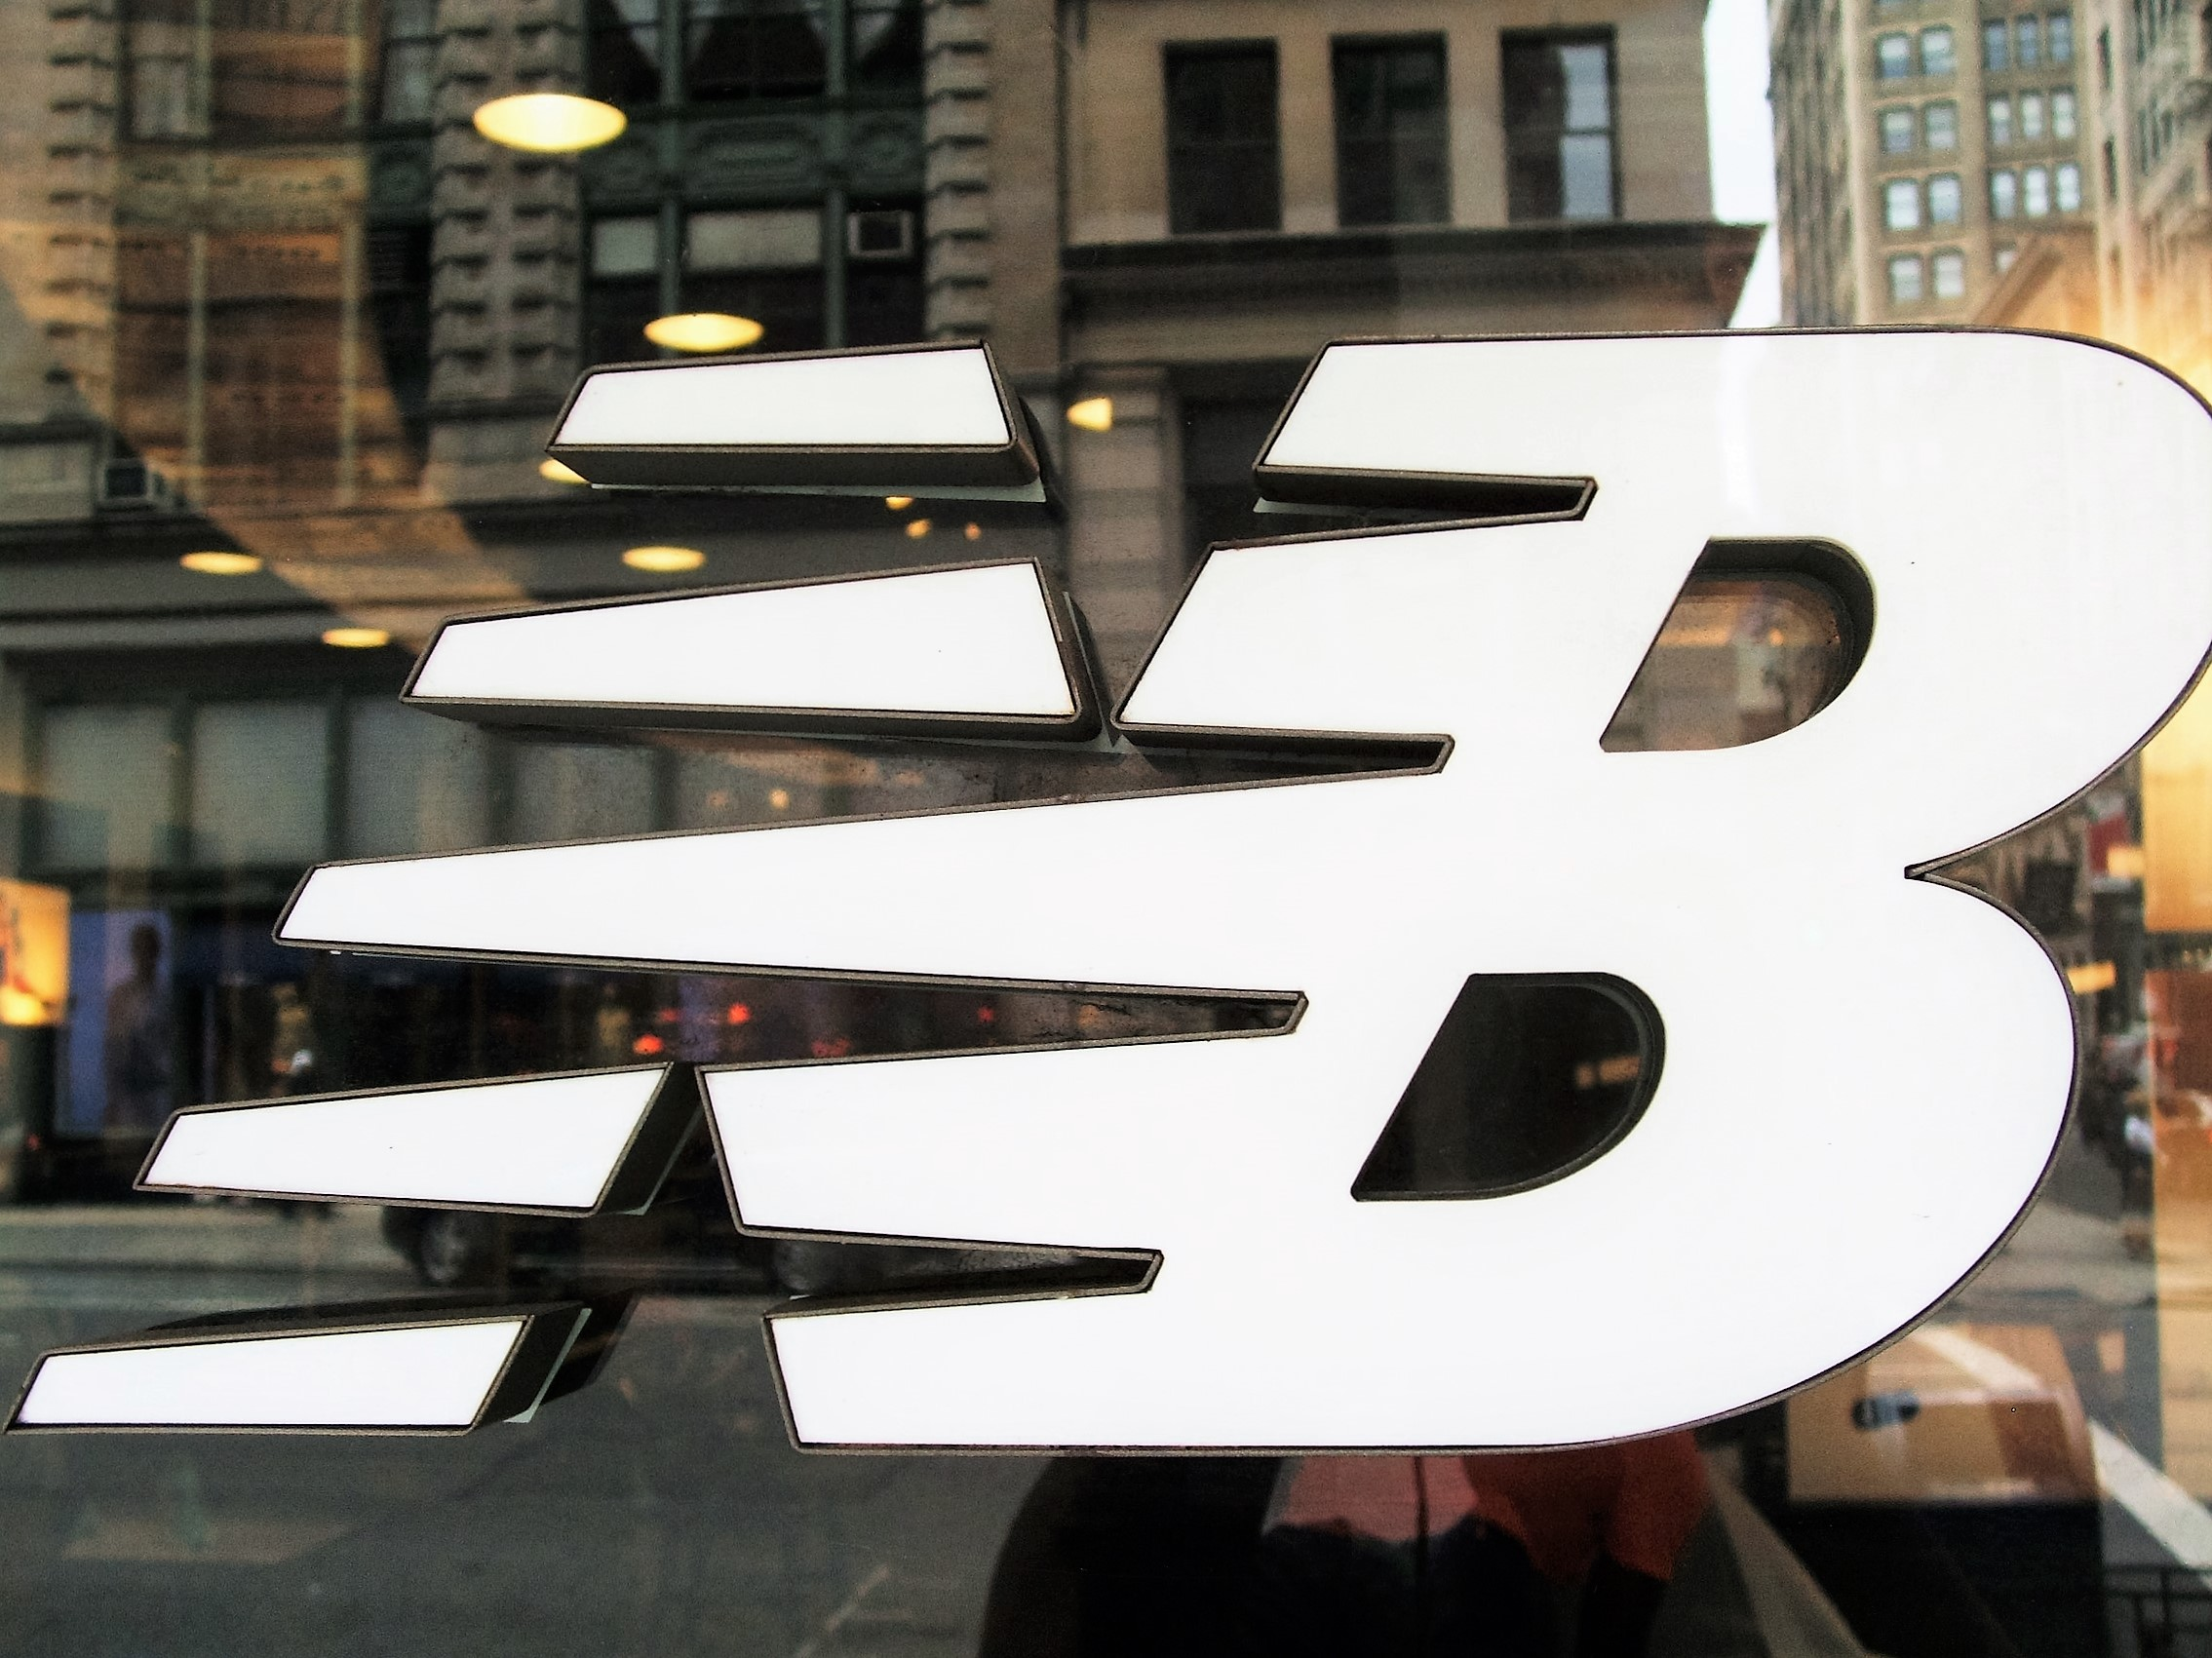 Work-Life Balance: On the opposite corner from the Nike's 5th Ave store, a New Balance store.